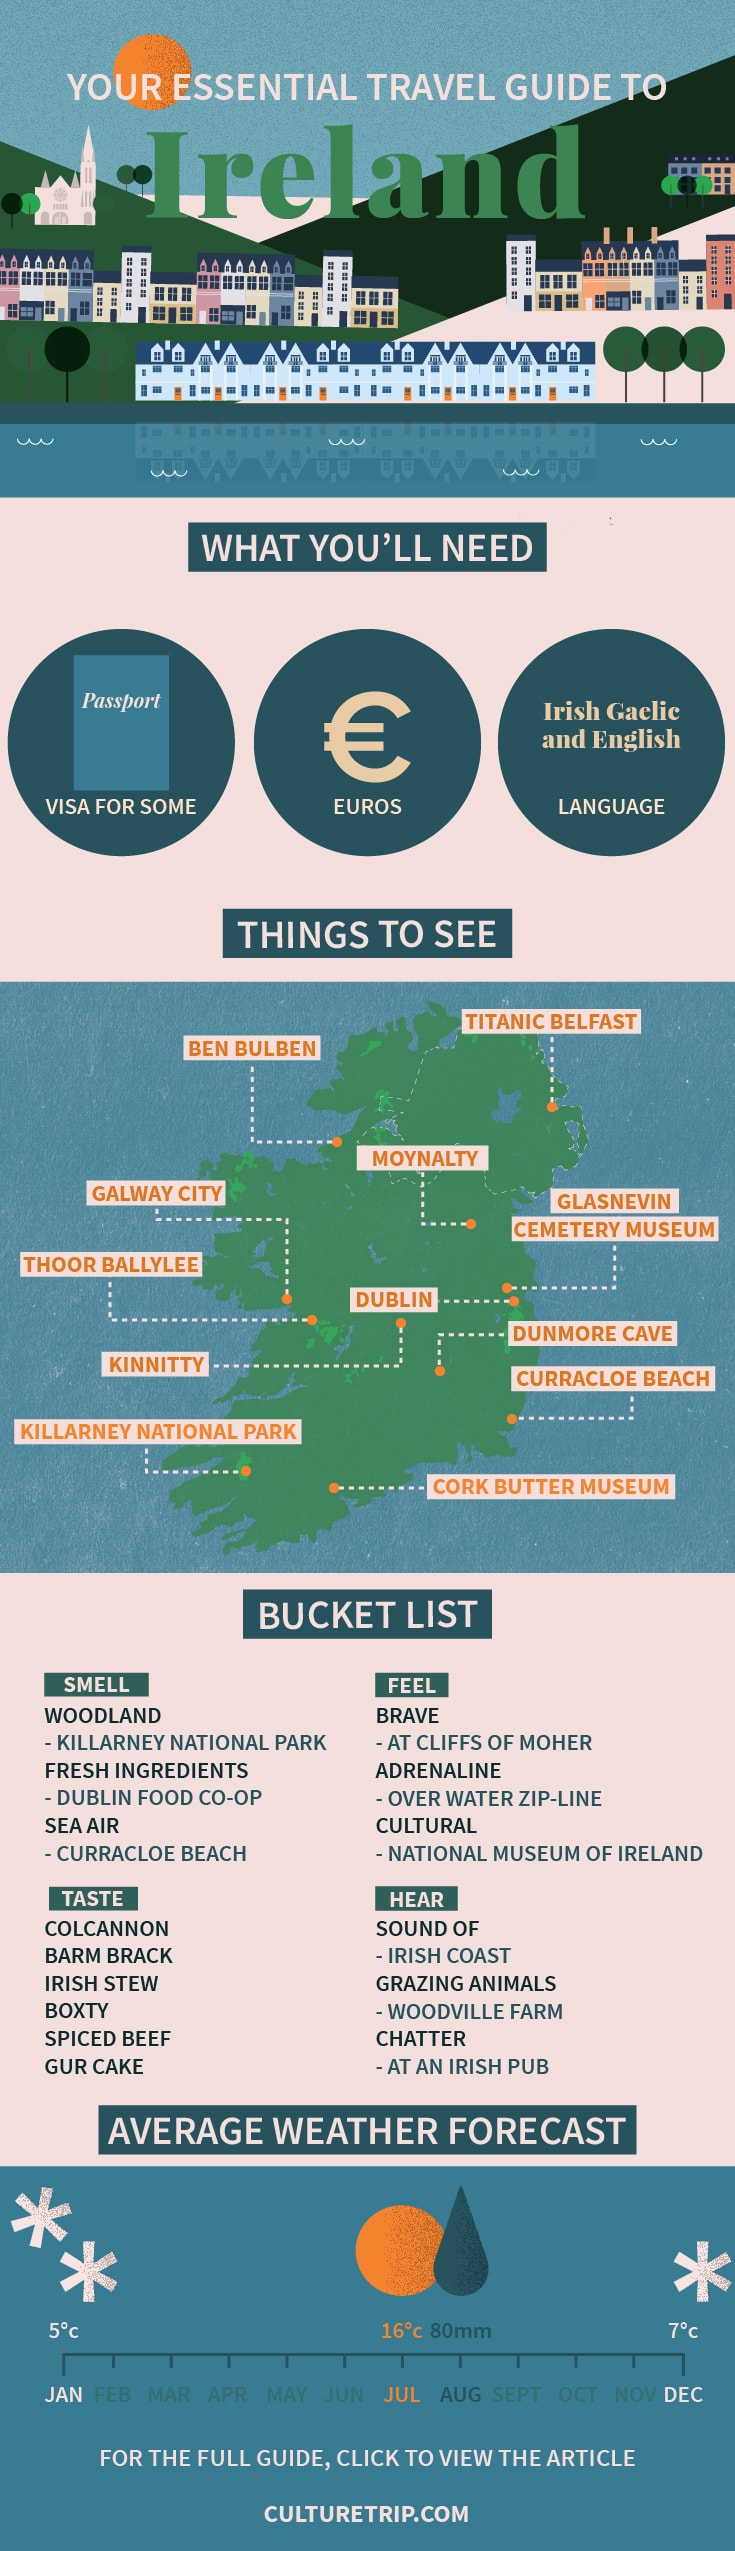 A travel guide for planning your trip to Ireland.